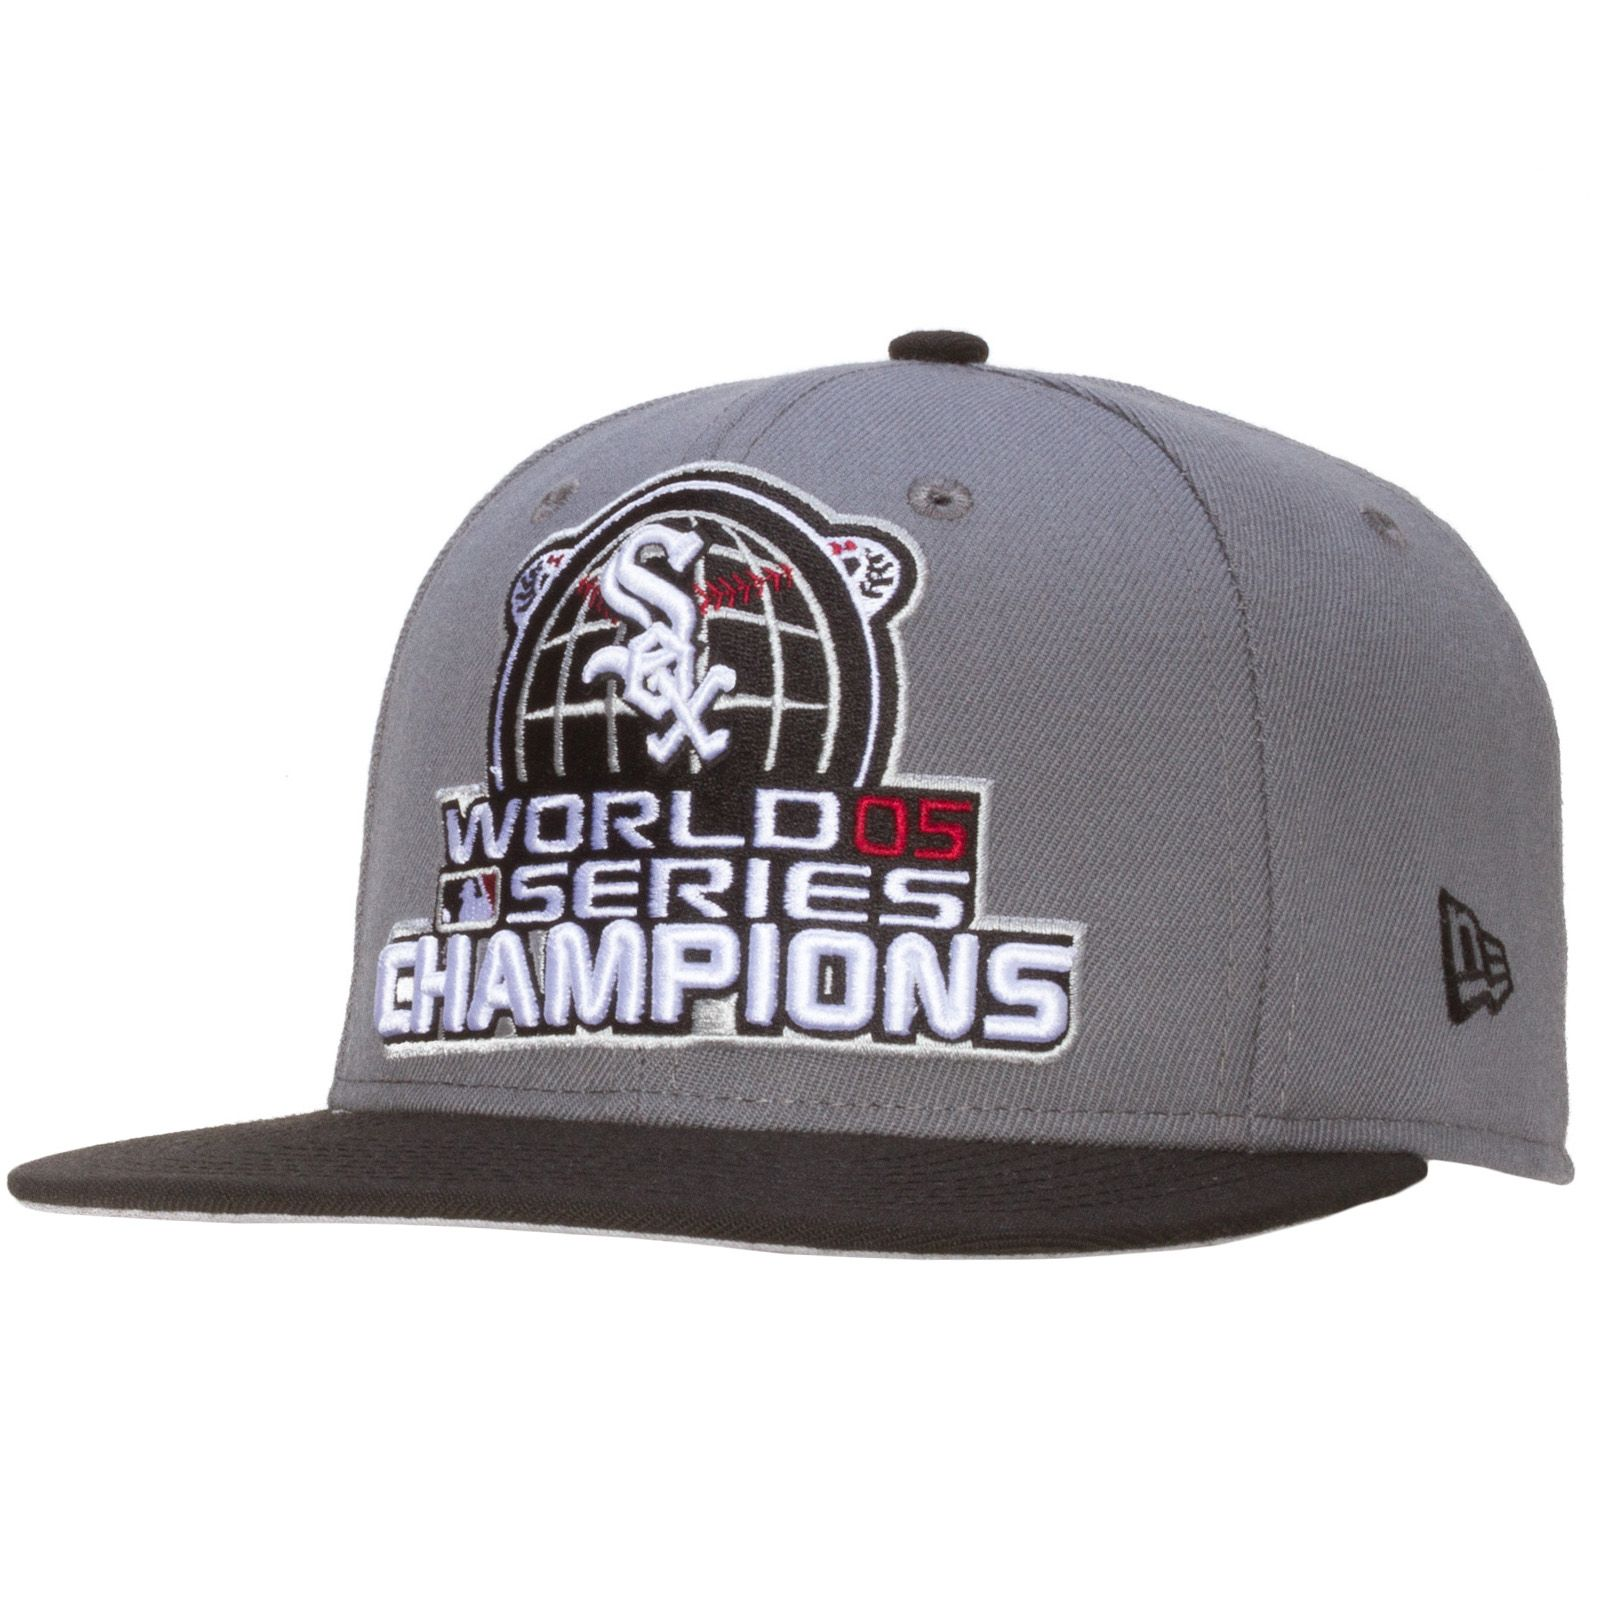 chicago white sox grey and black 2005 world series champions snapback hat by new era